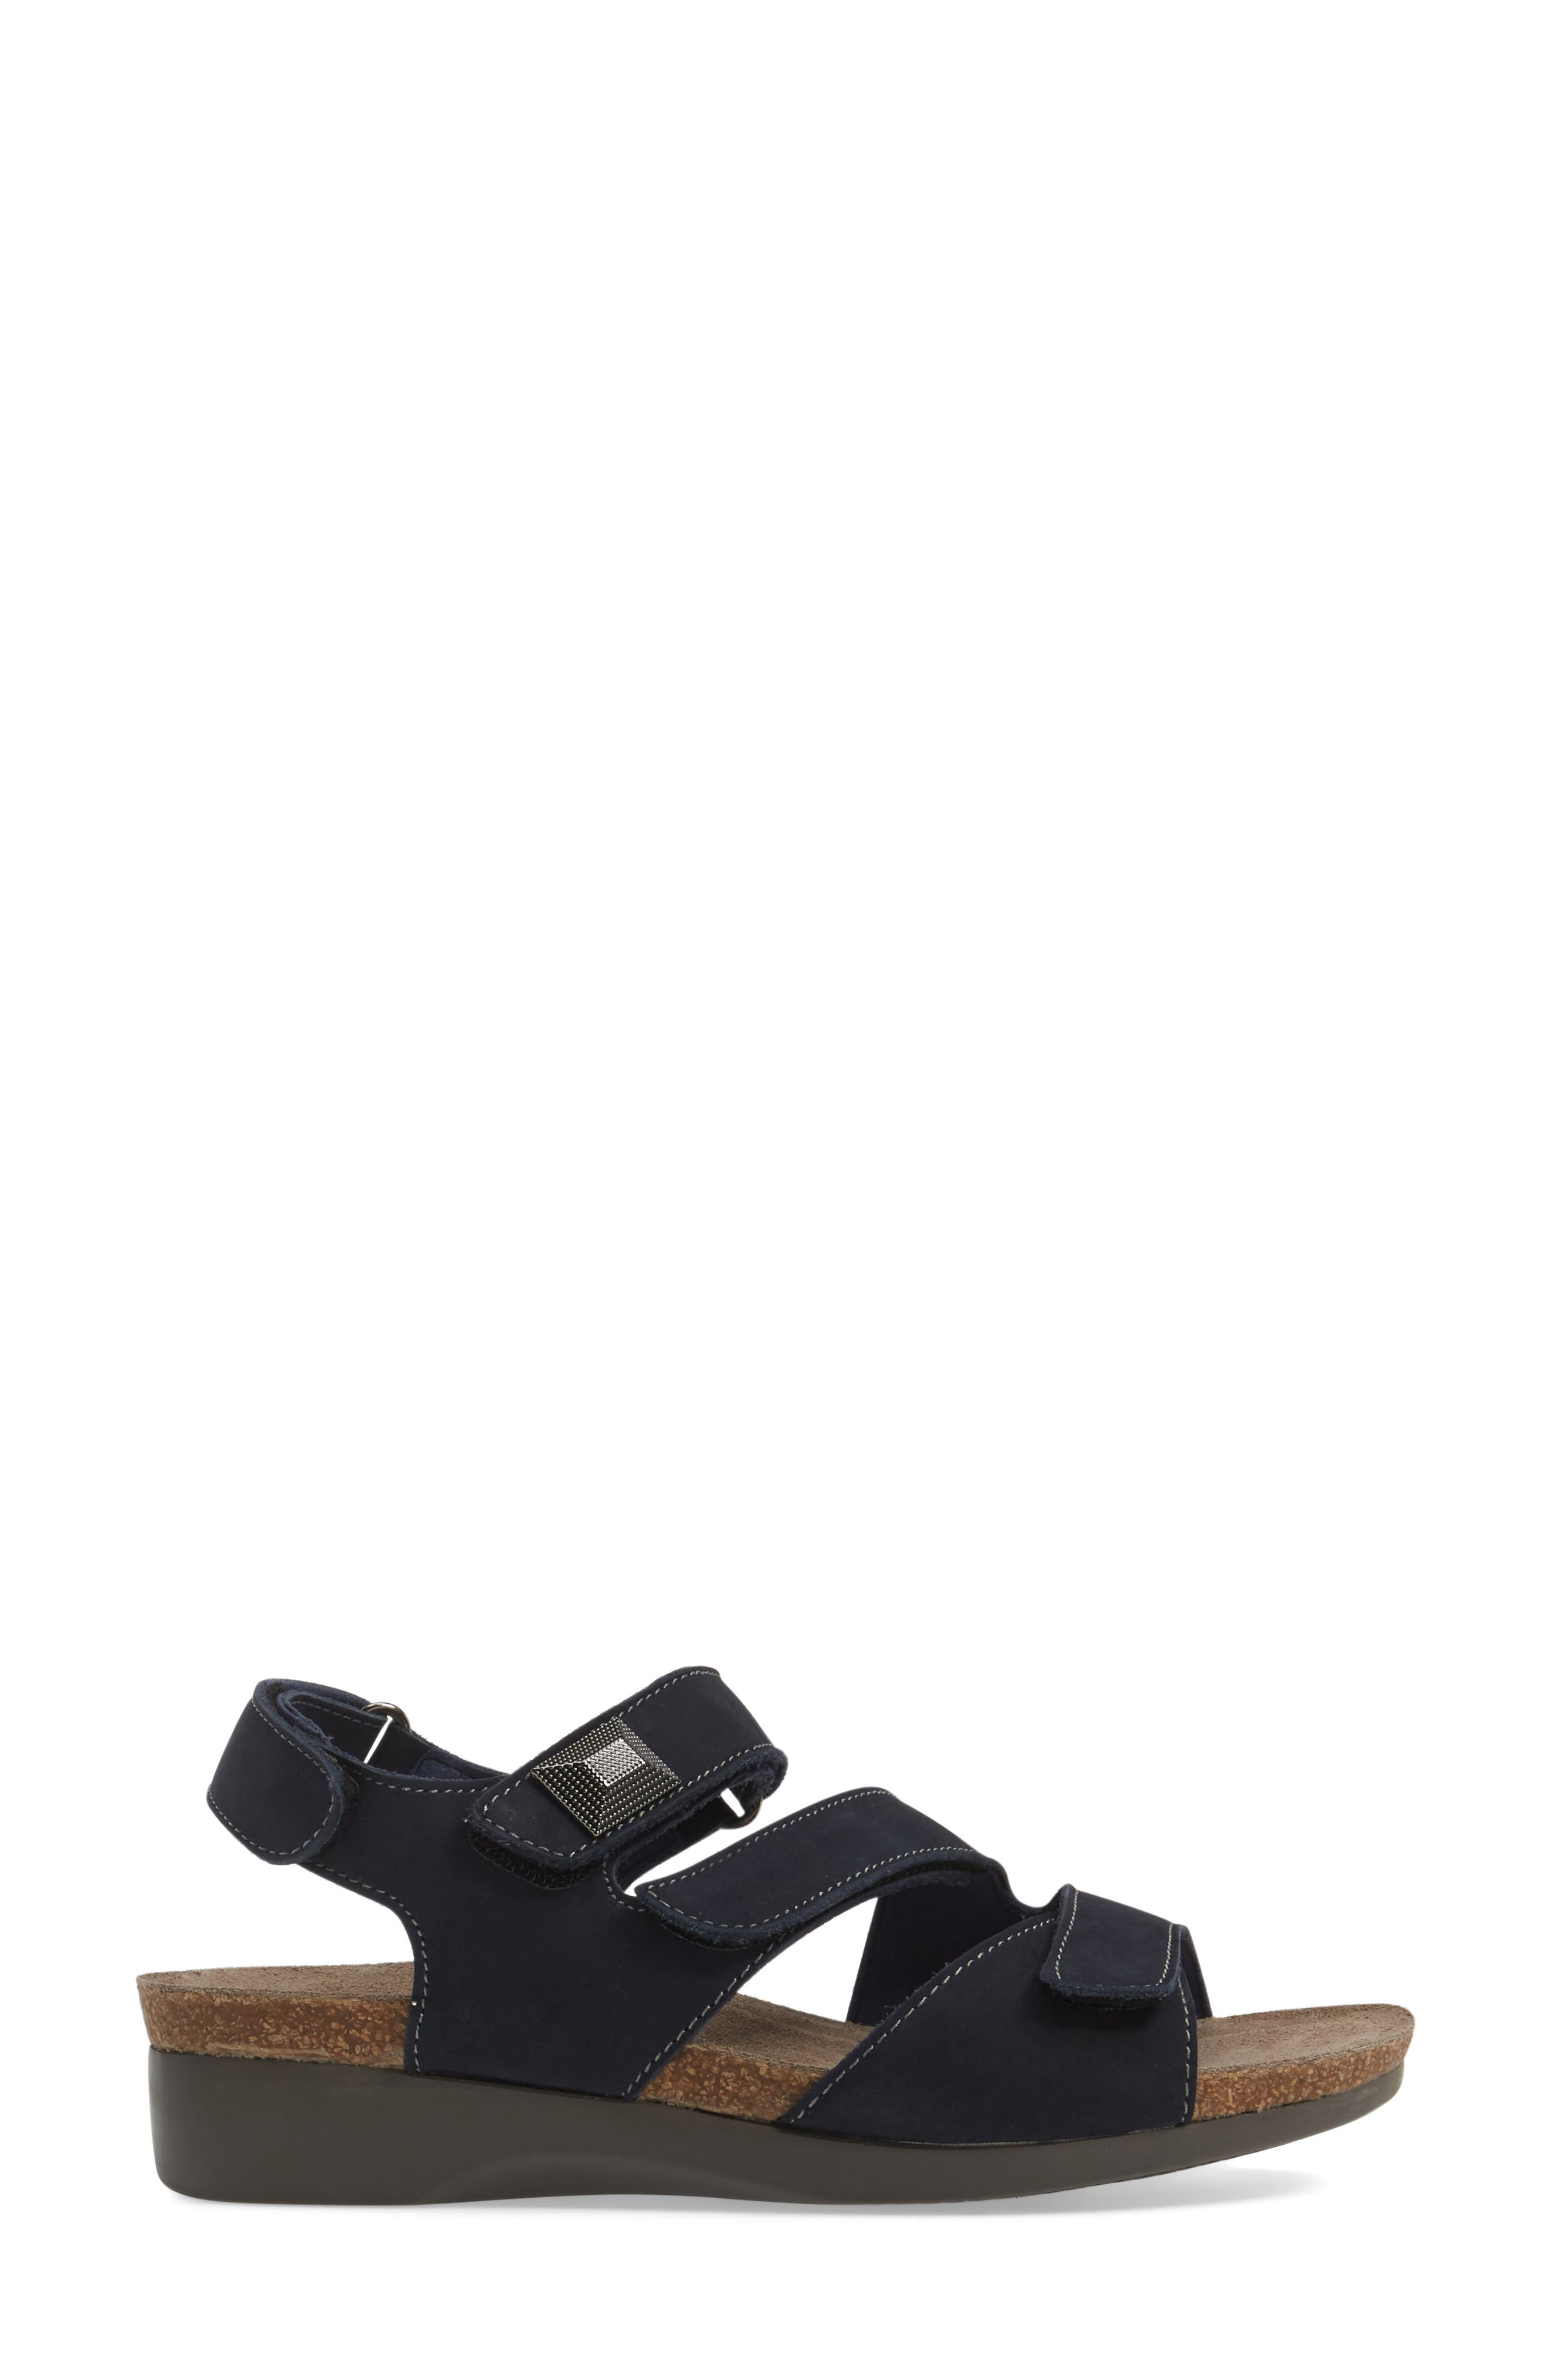 Alternate Image 3  - Munro Antila Sandal (Women)